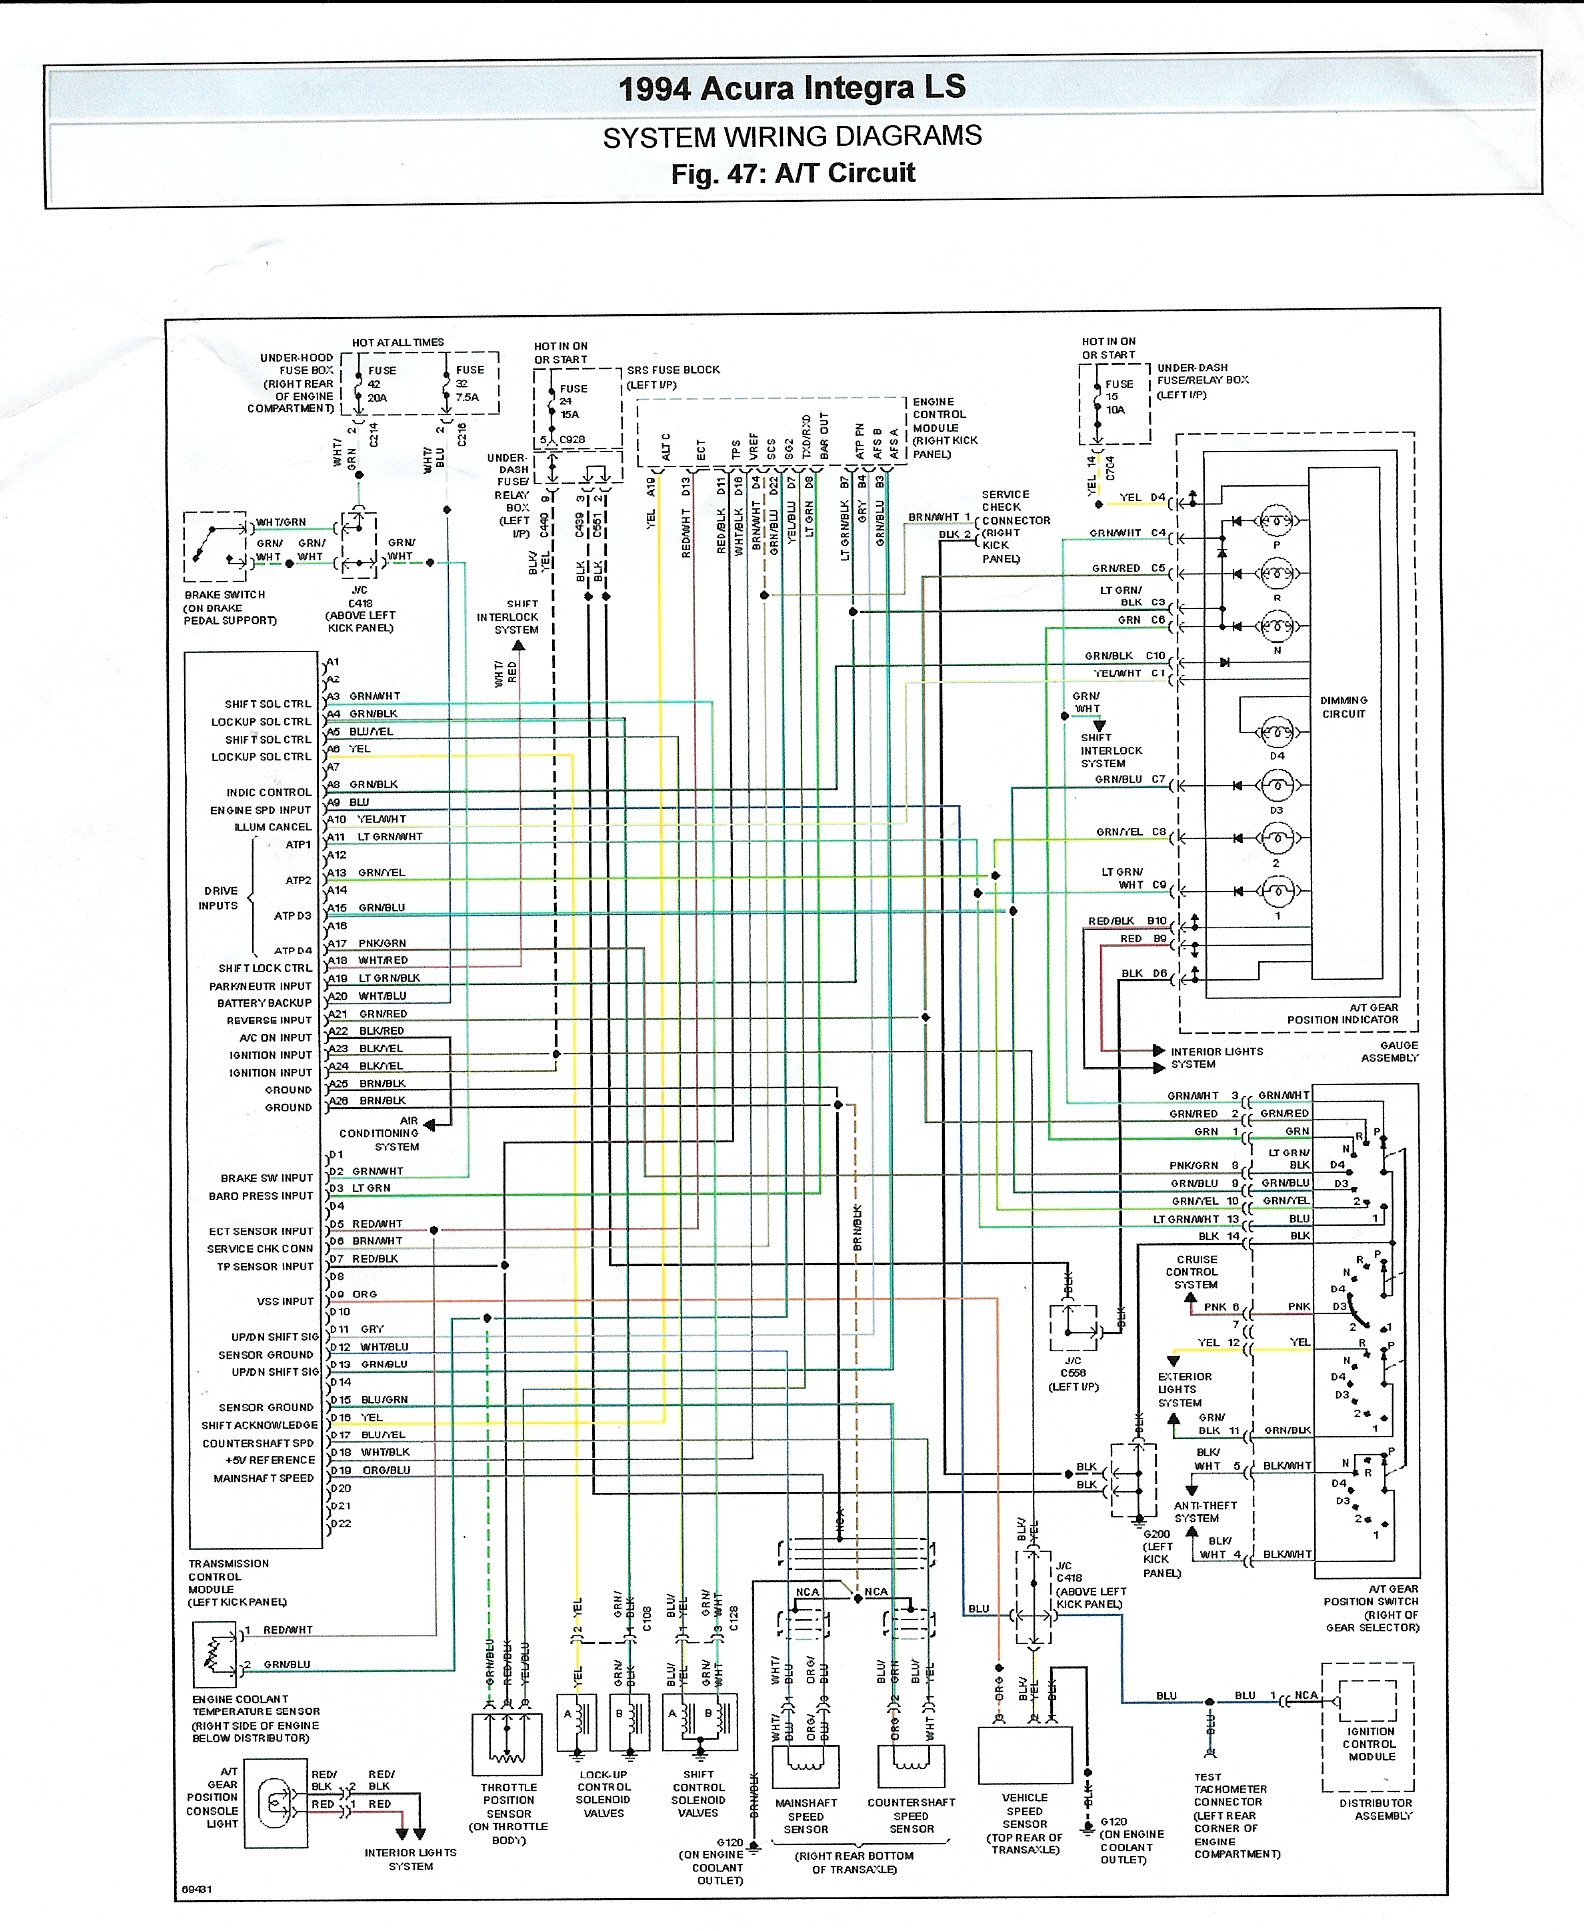 90 acura integra wiring diagram - 2009 suzuki m50 wiring diagram for wiring  diagram schematics  wiring diagram schematics